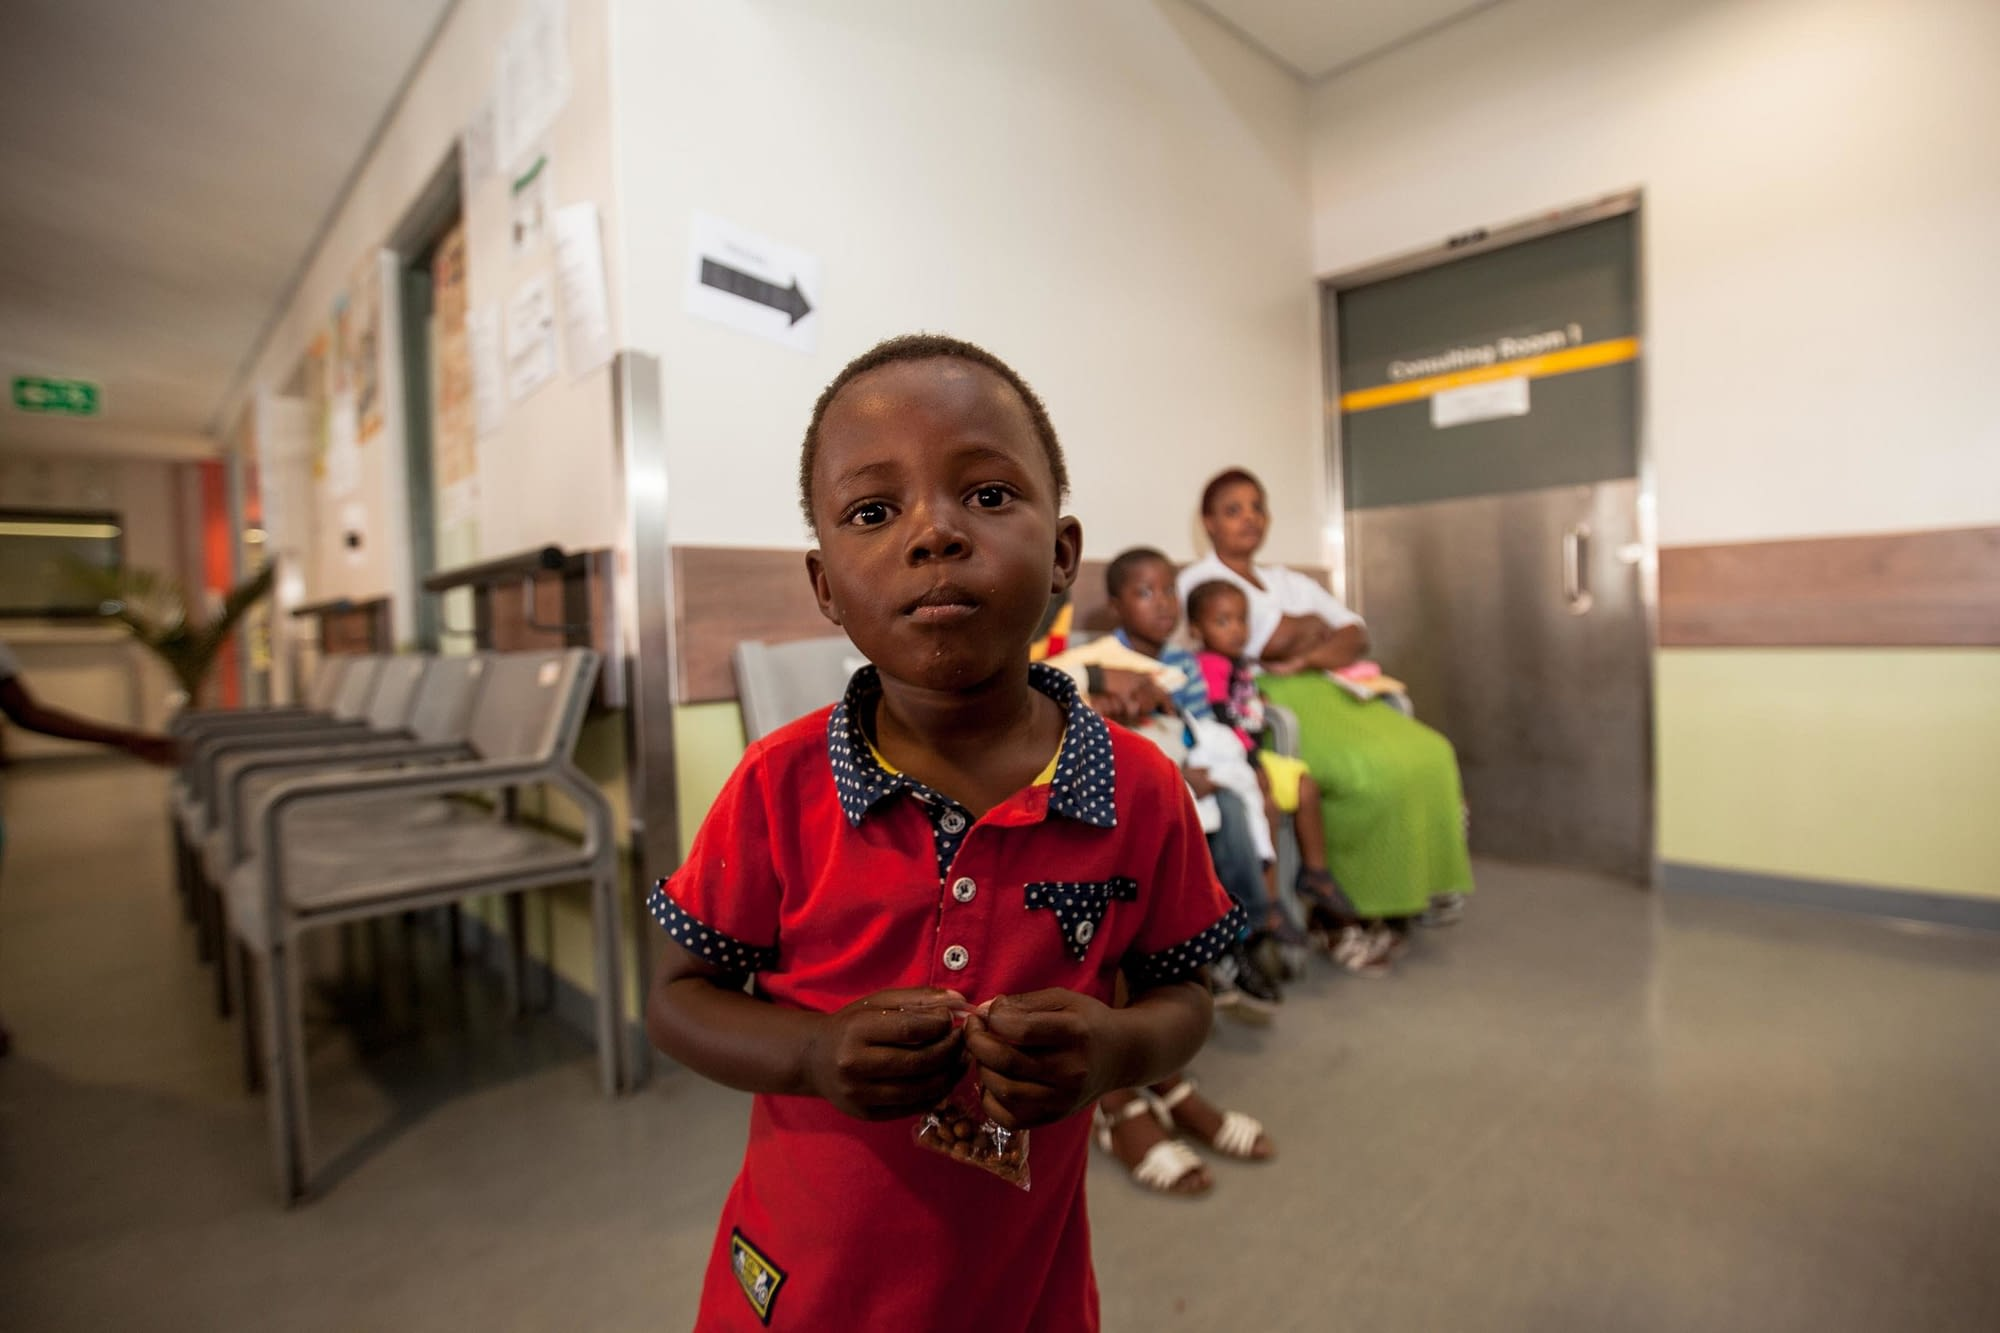 Little boy looking at the camera in a hospital